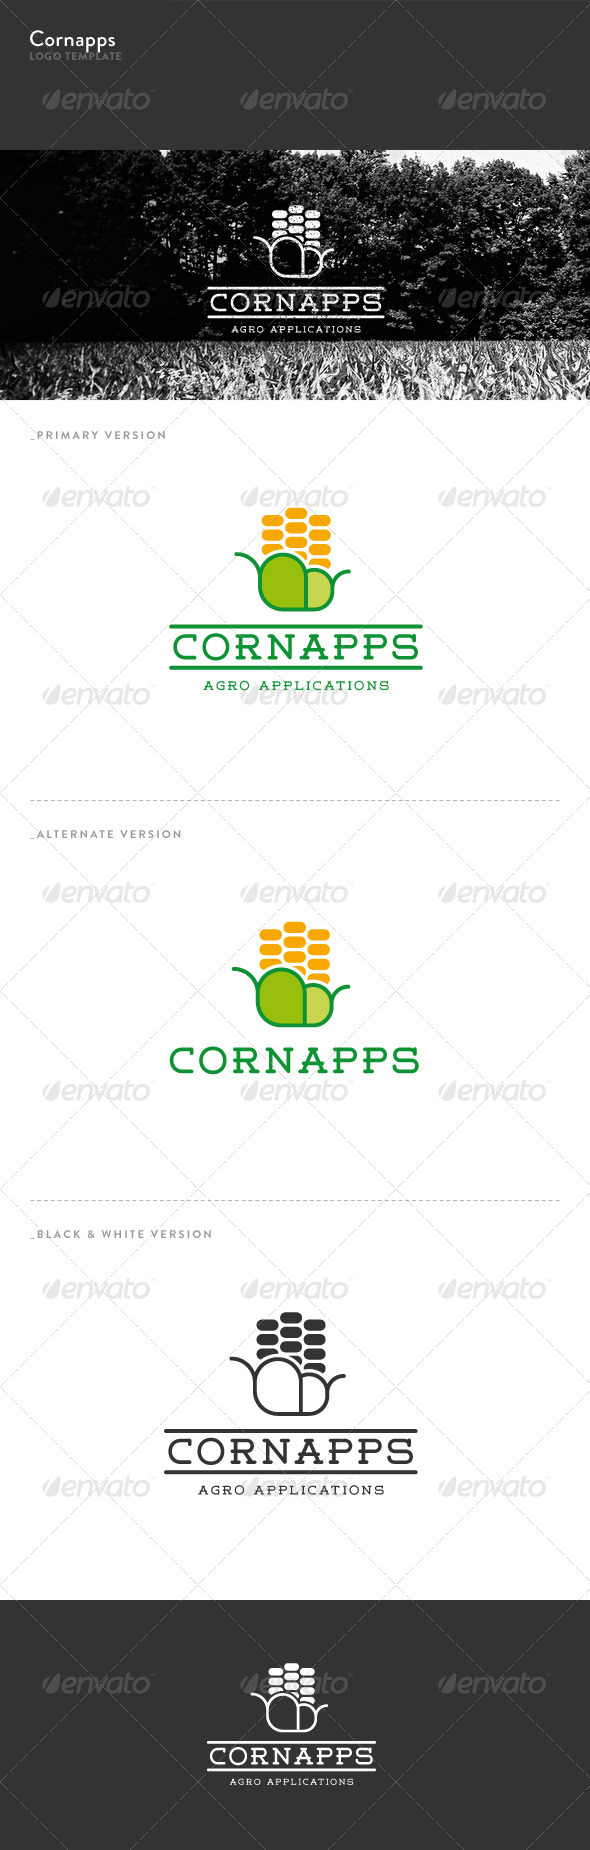 GraphicRiver Corn Apps Logo 5699860